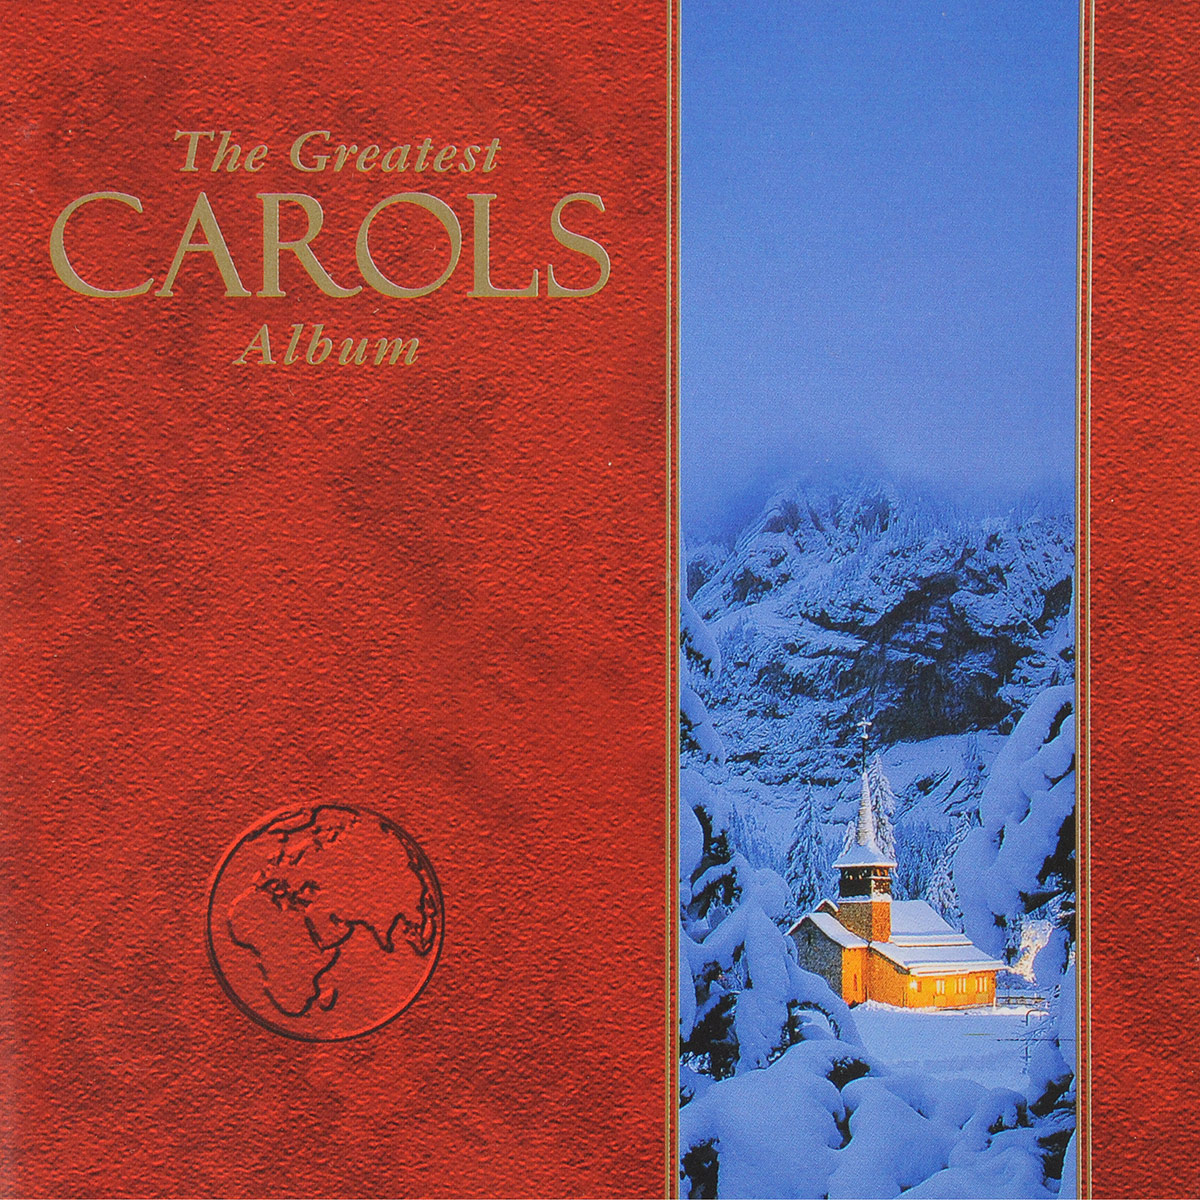 VARIOUS ARTISTS. THE GREATEST CAROLS ALBUM